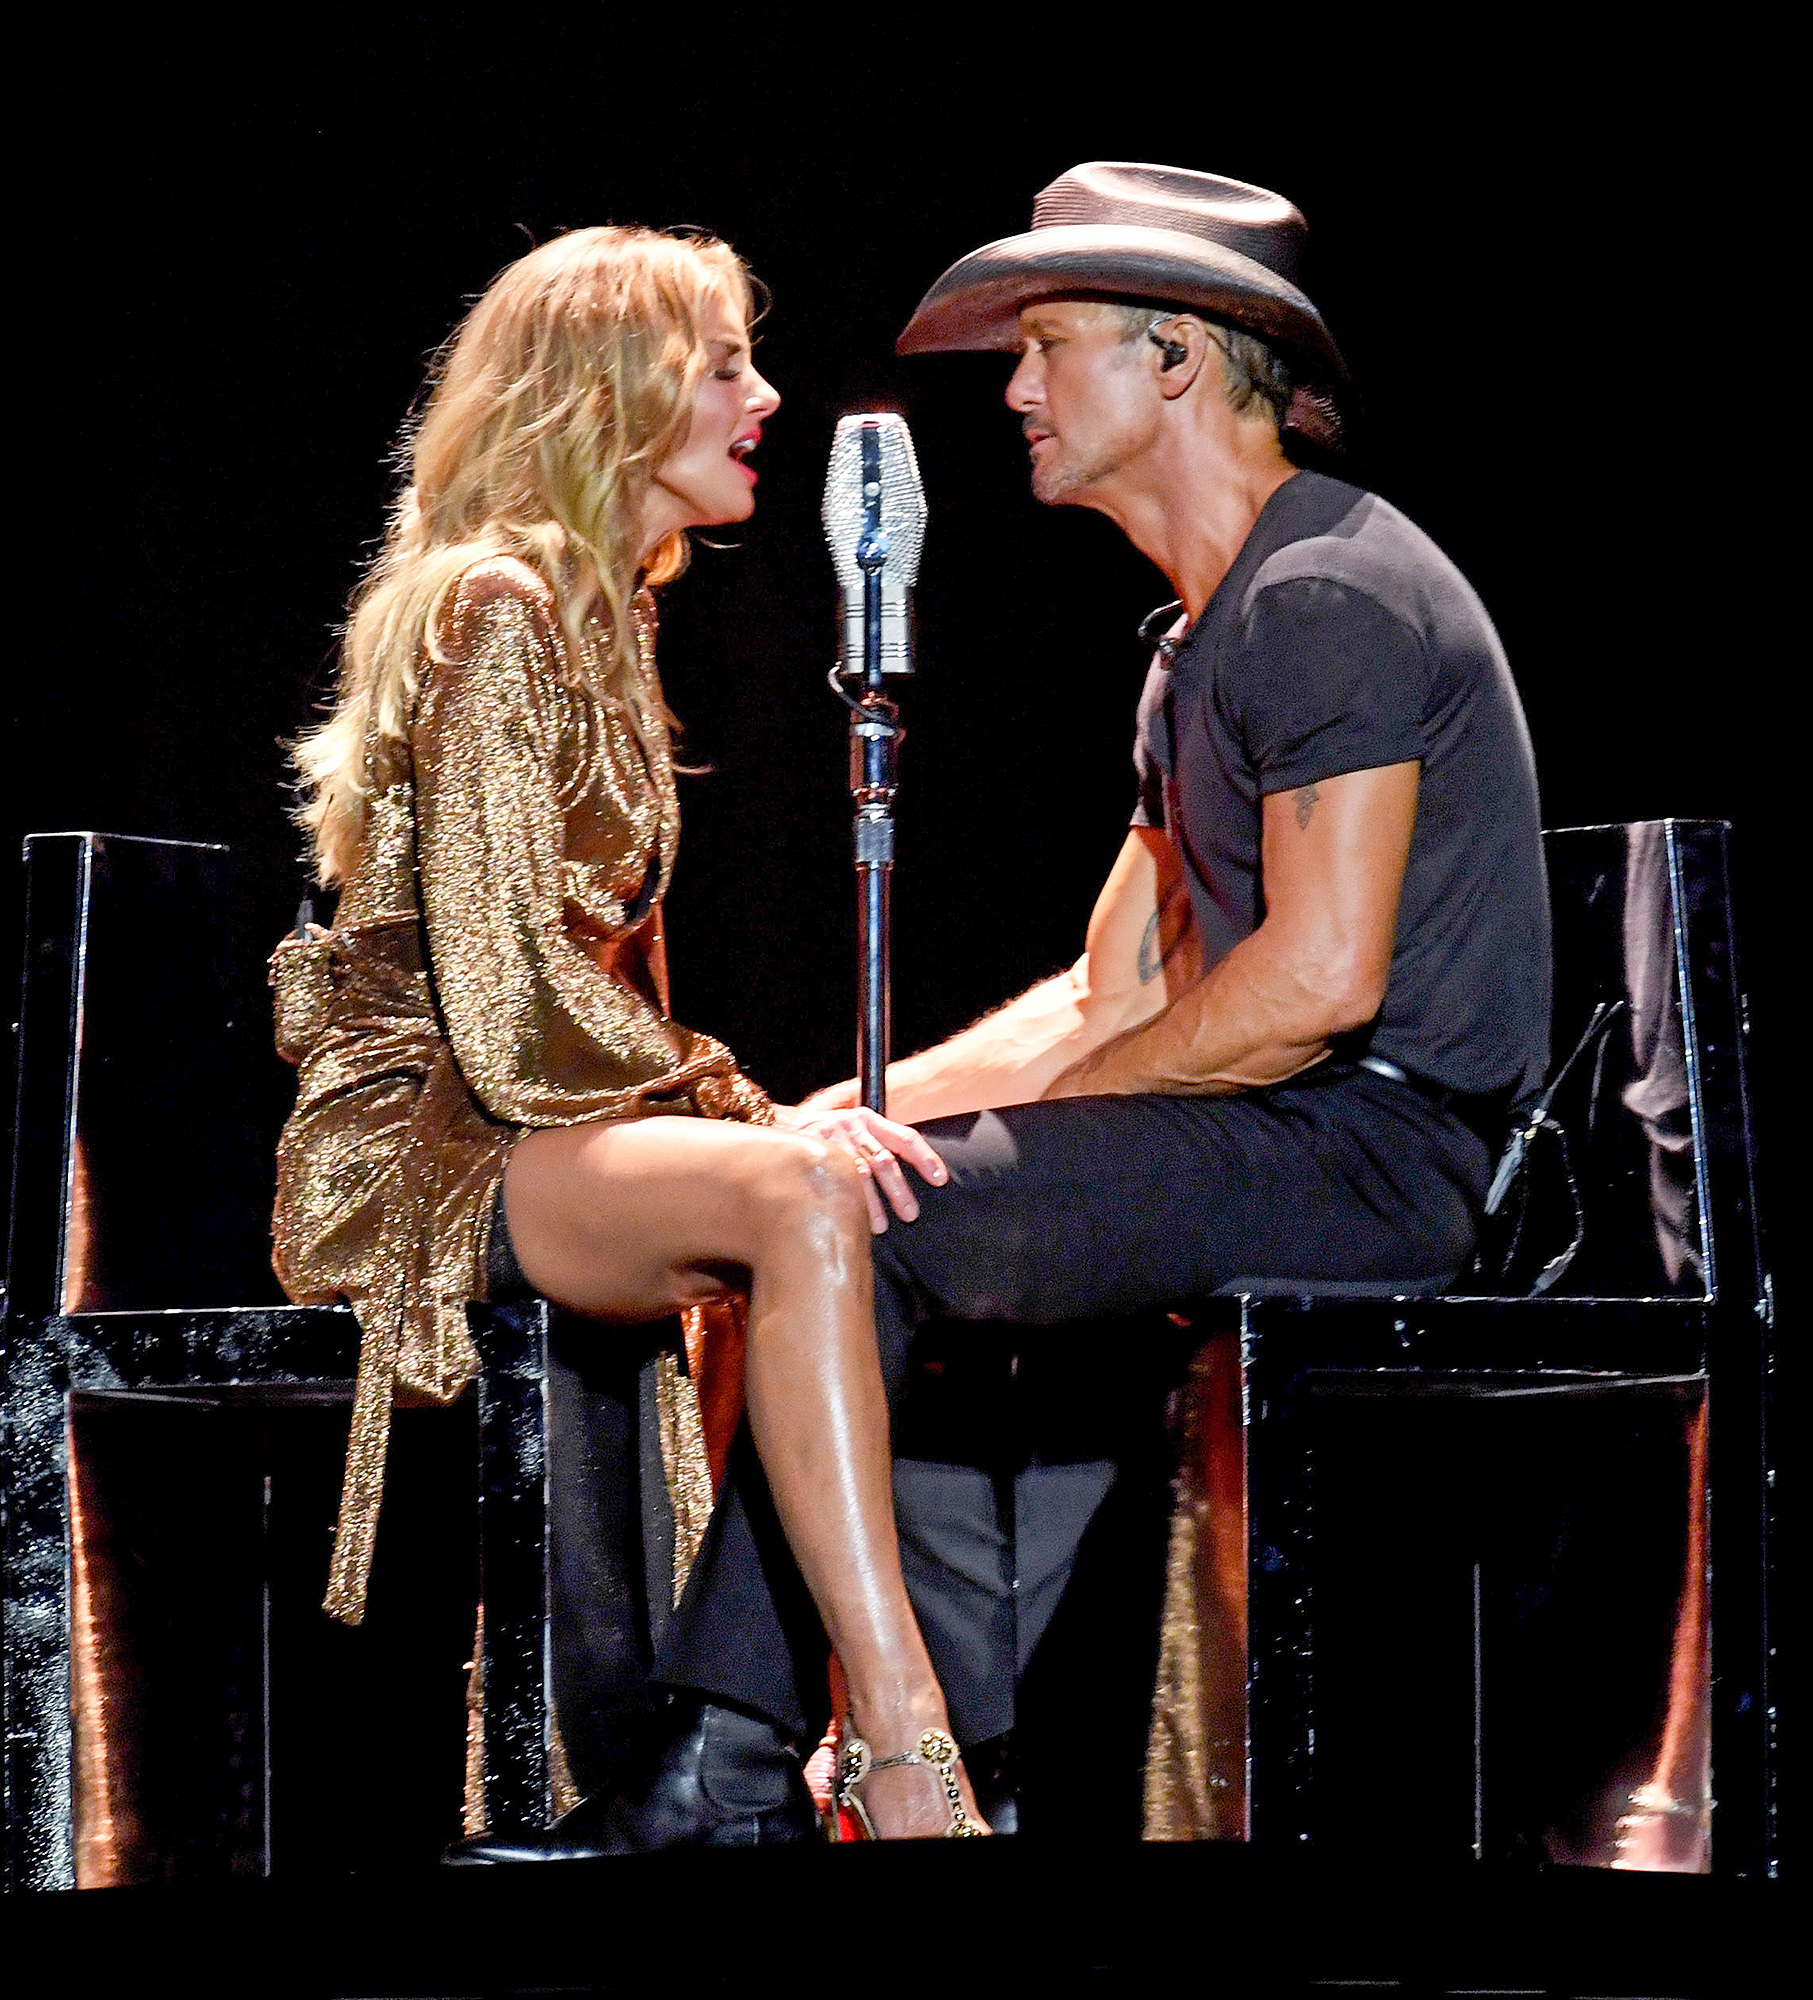 ***BESTPIX*** Tim McGraw And Faith Hill Perform At Staples Center